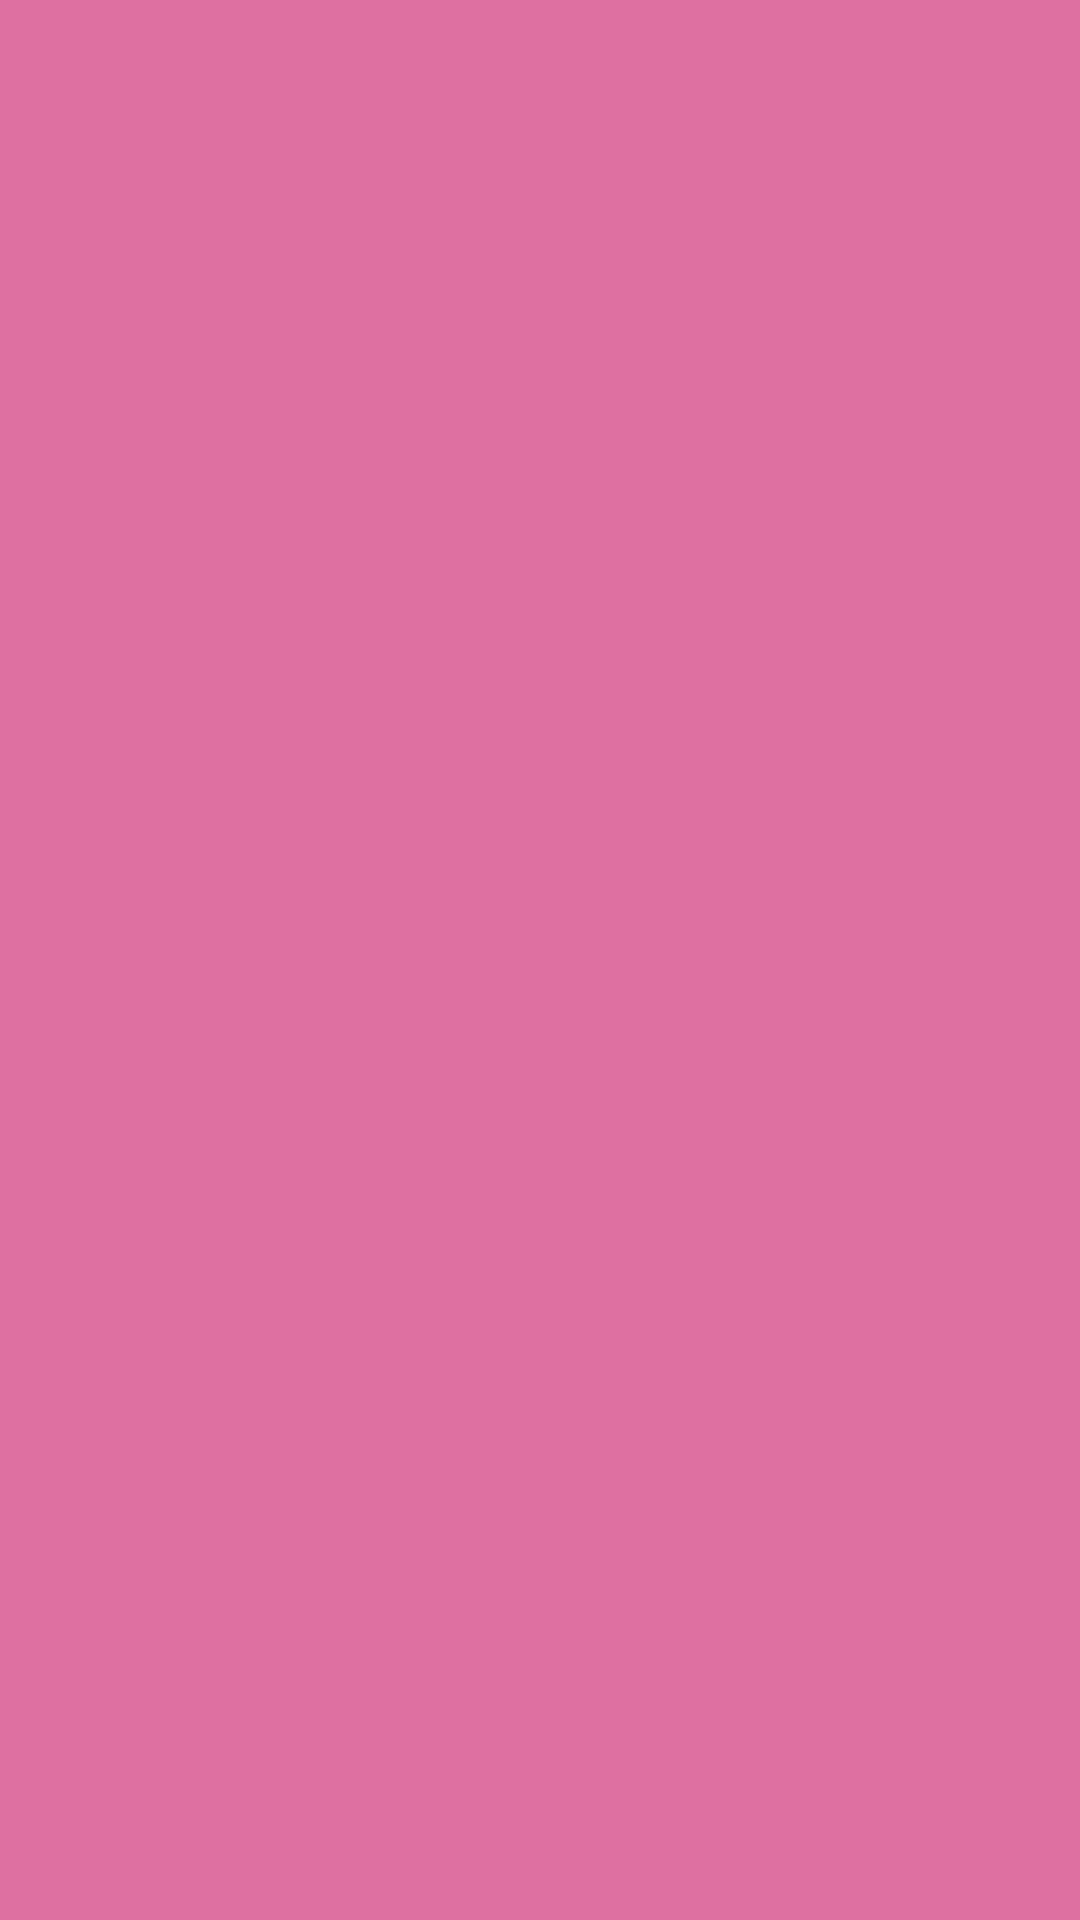 1080x1920 China Pink Solid Color Background